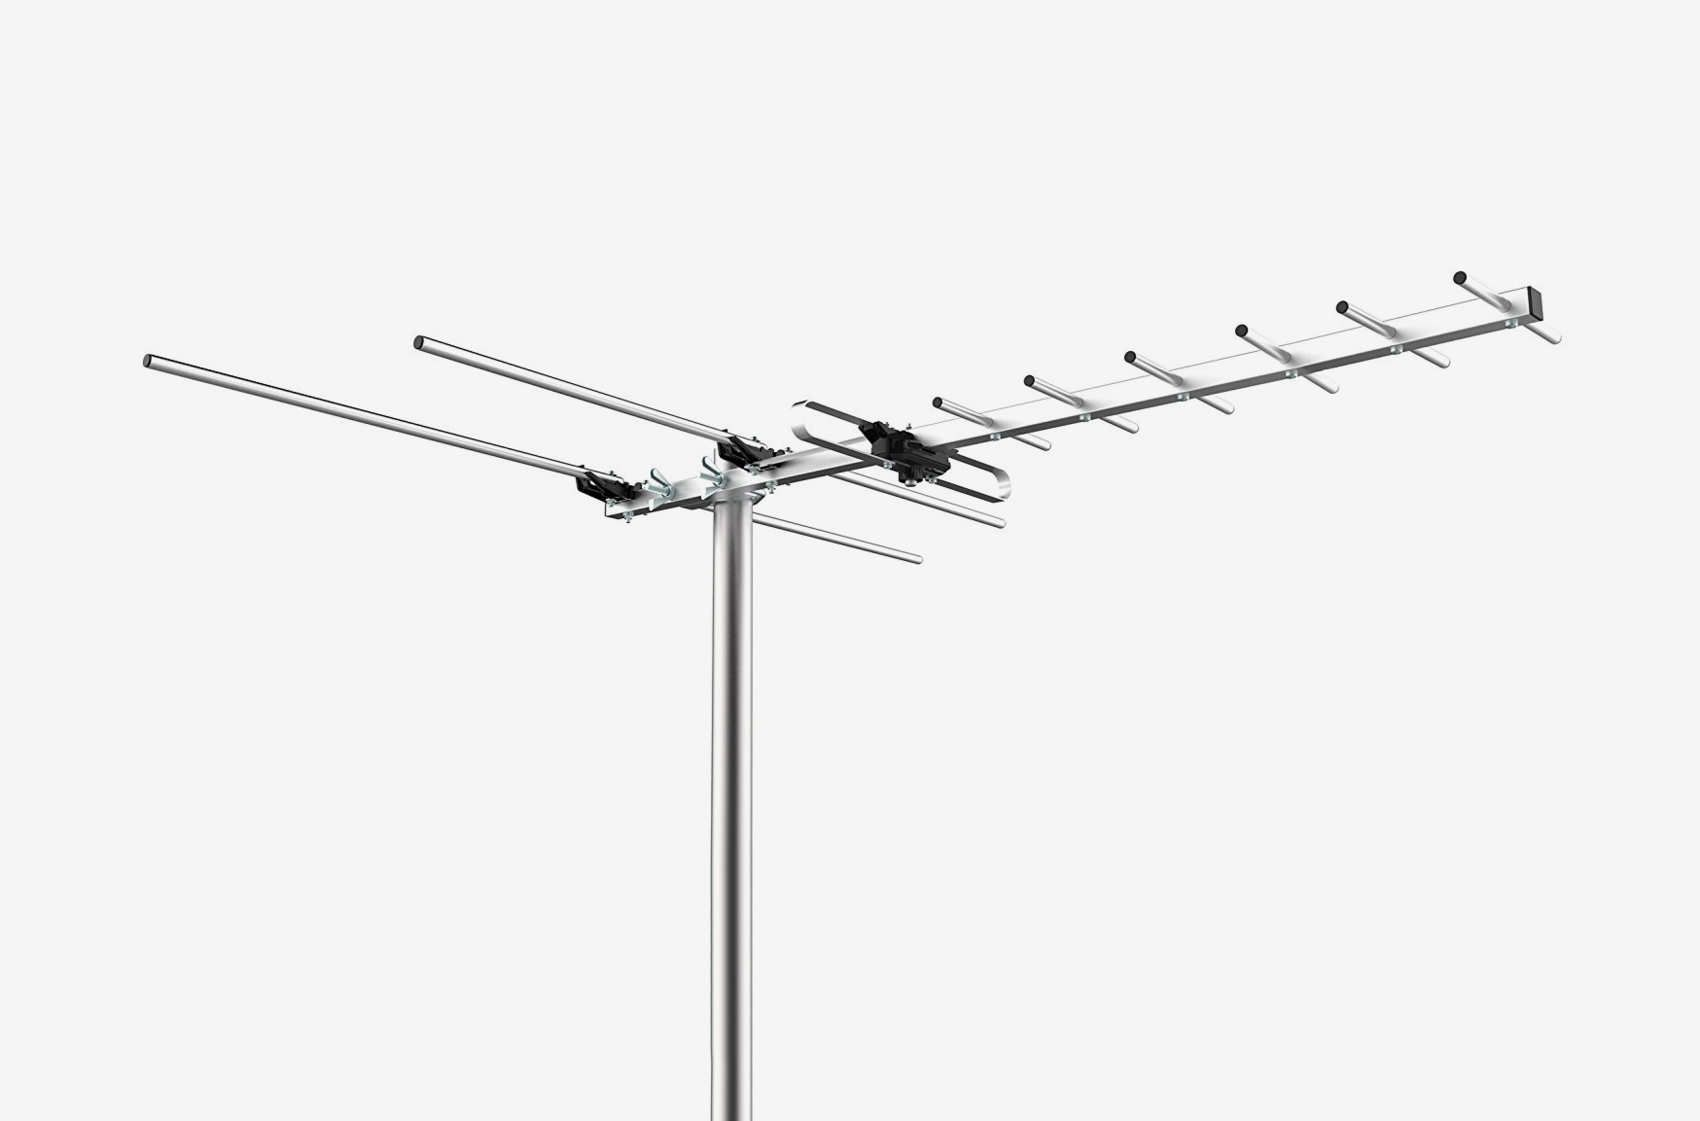 The Best Outdoor Tv Antennas On Amazon According To Hyperenthusiastic Reviewers Outdoor Antenna Outdoor Tv Antenna Best Outdoor Tv Antenna